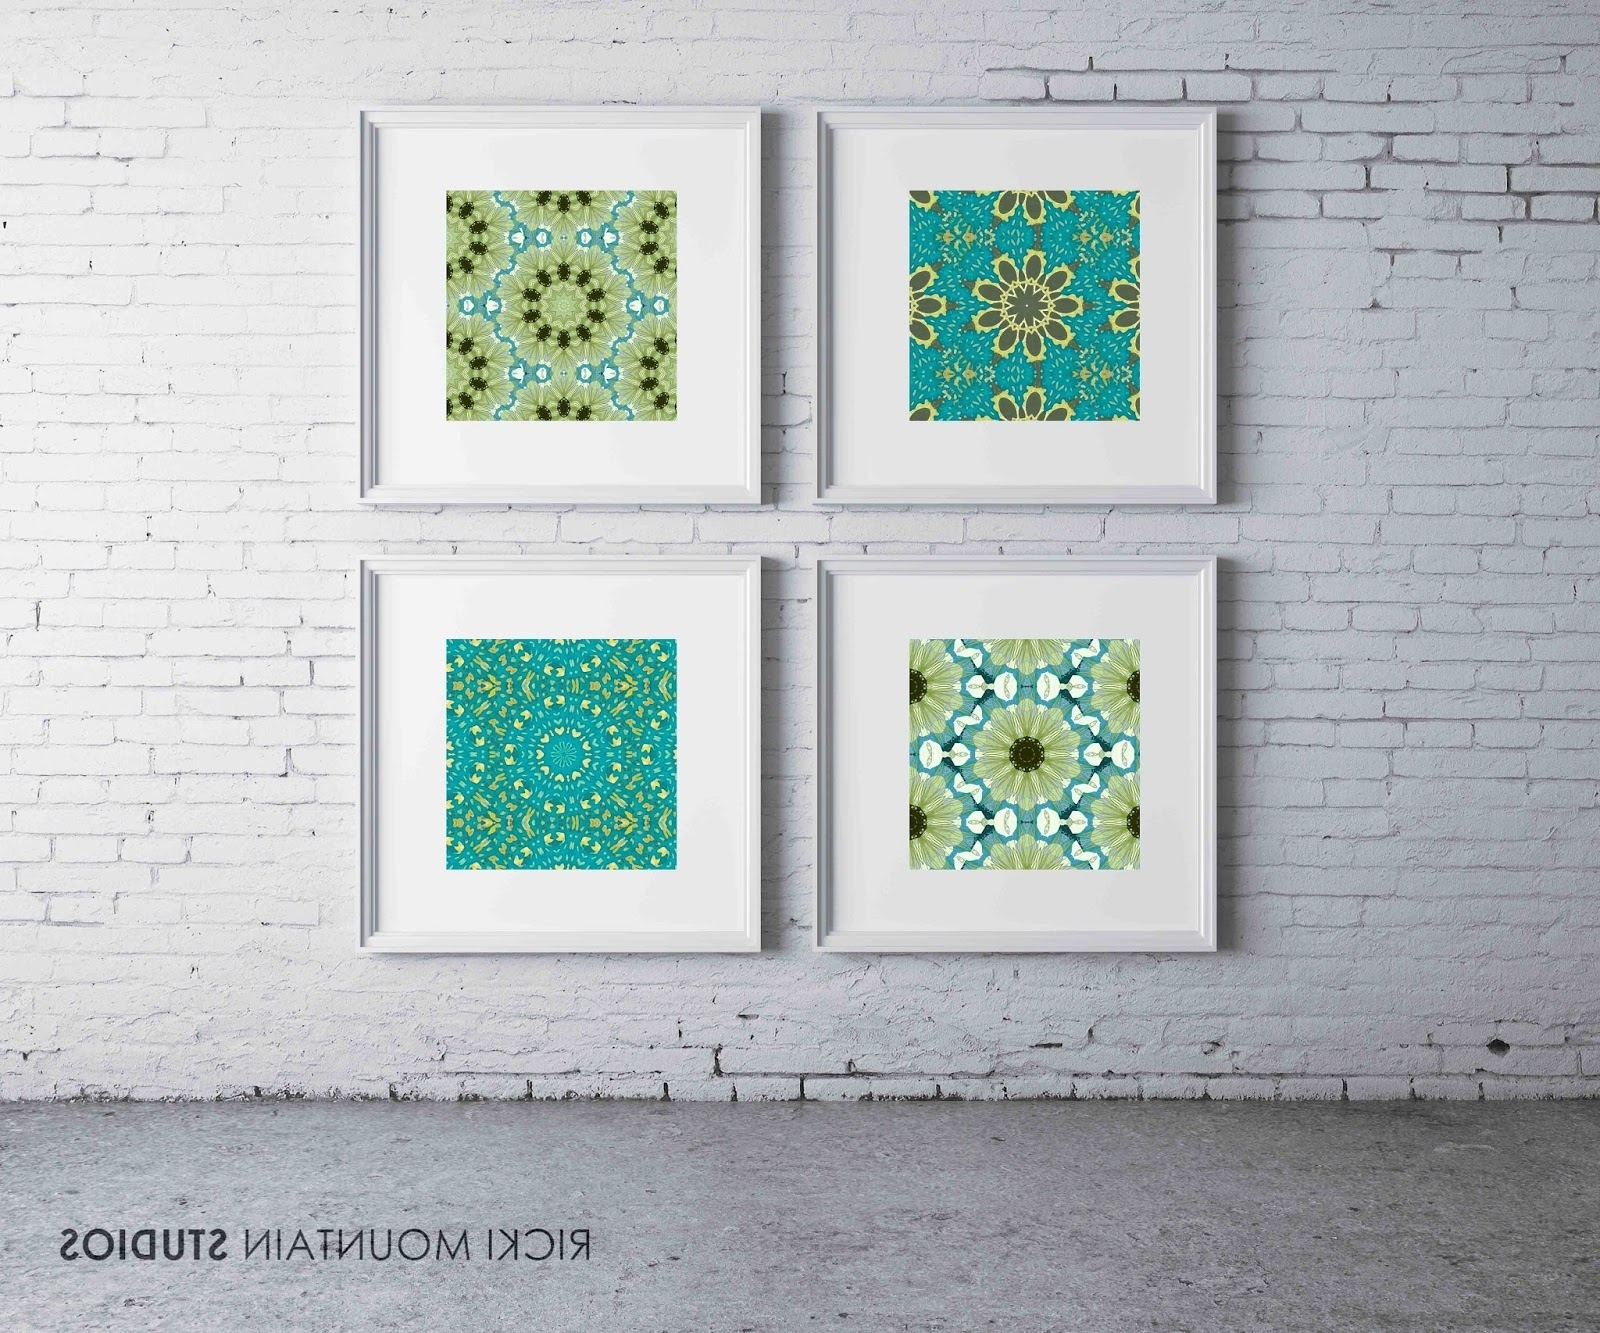 Famous A Love Of Symmetry, Pattern And Color Regarding Framed Art Prints Sets (View 12 of 15)